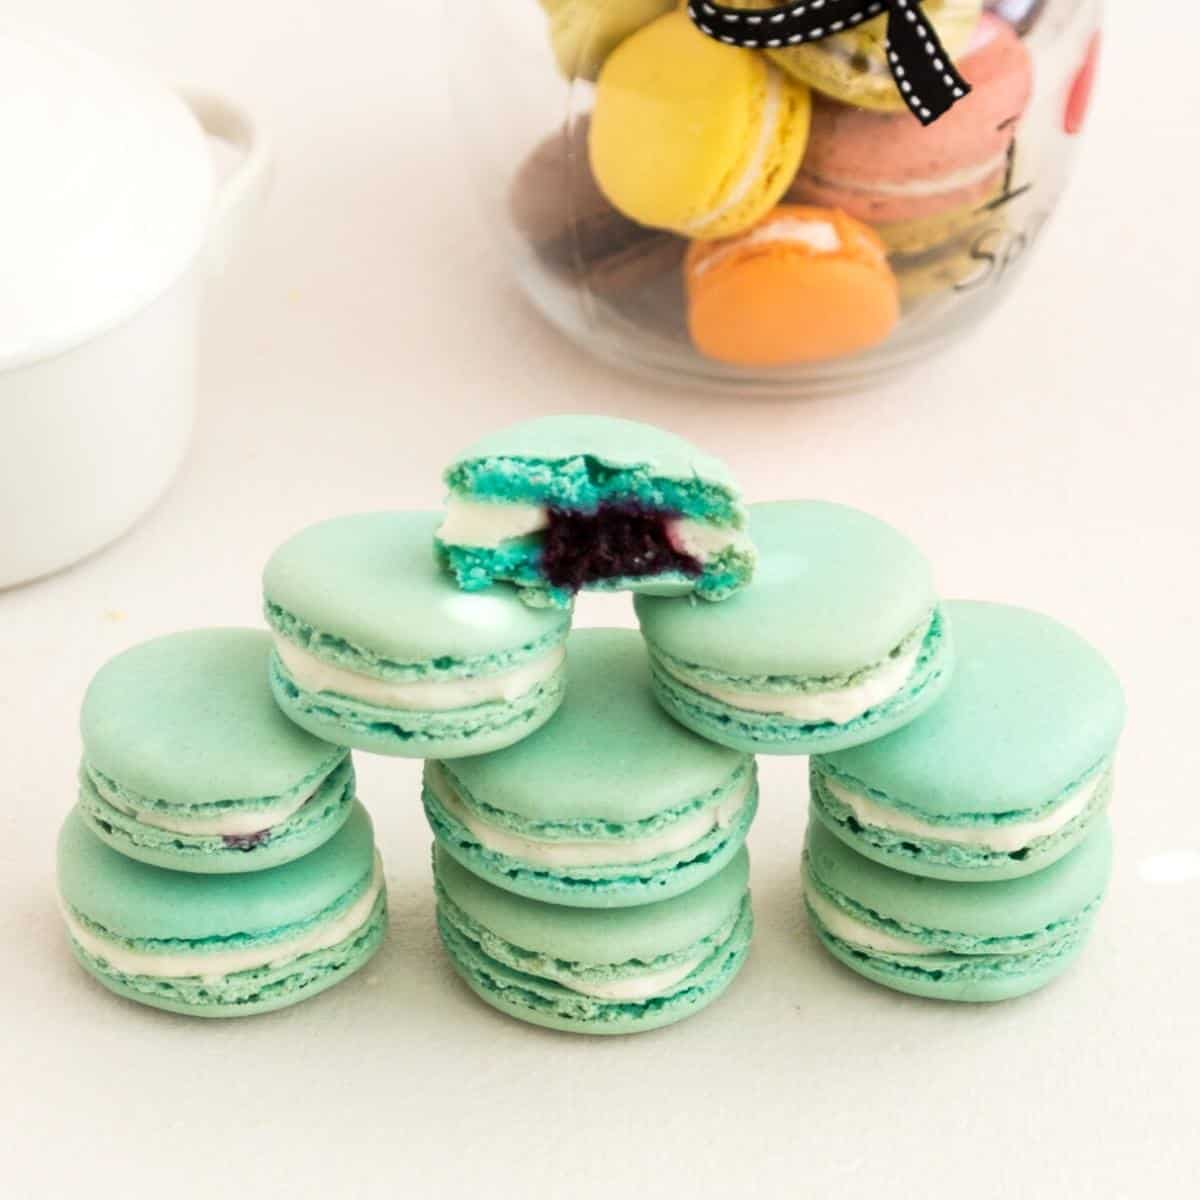 A stack of macarons on a table